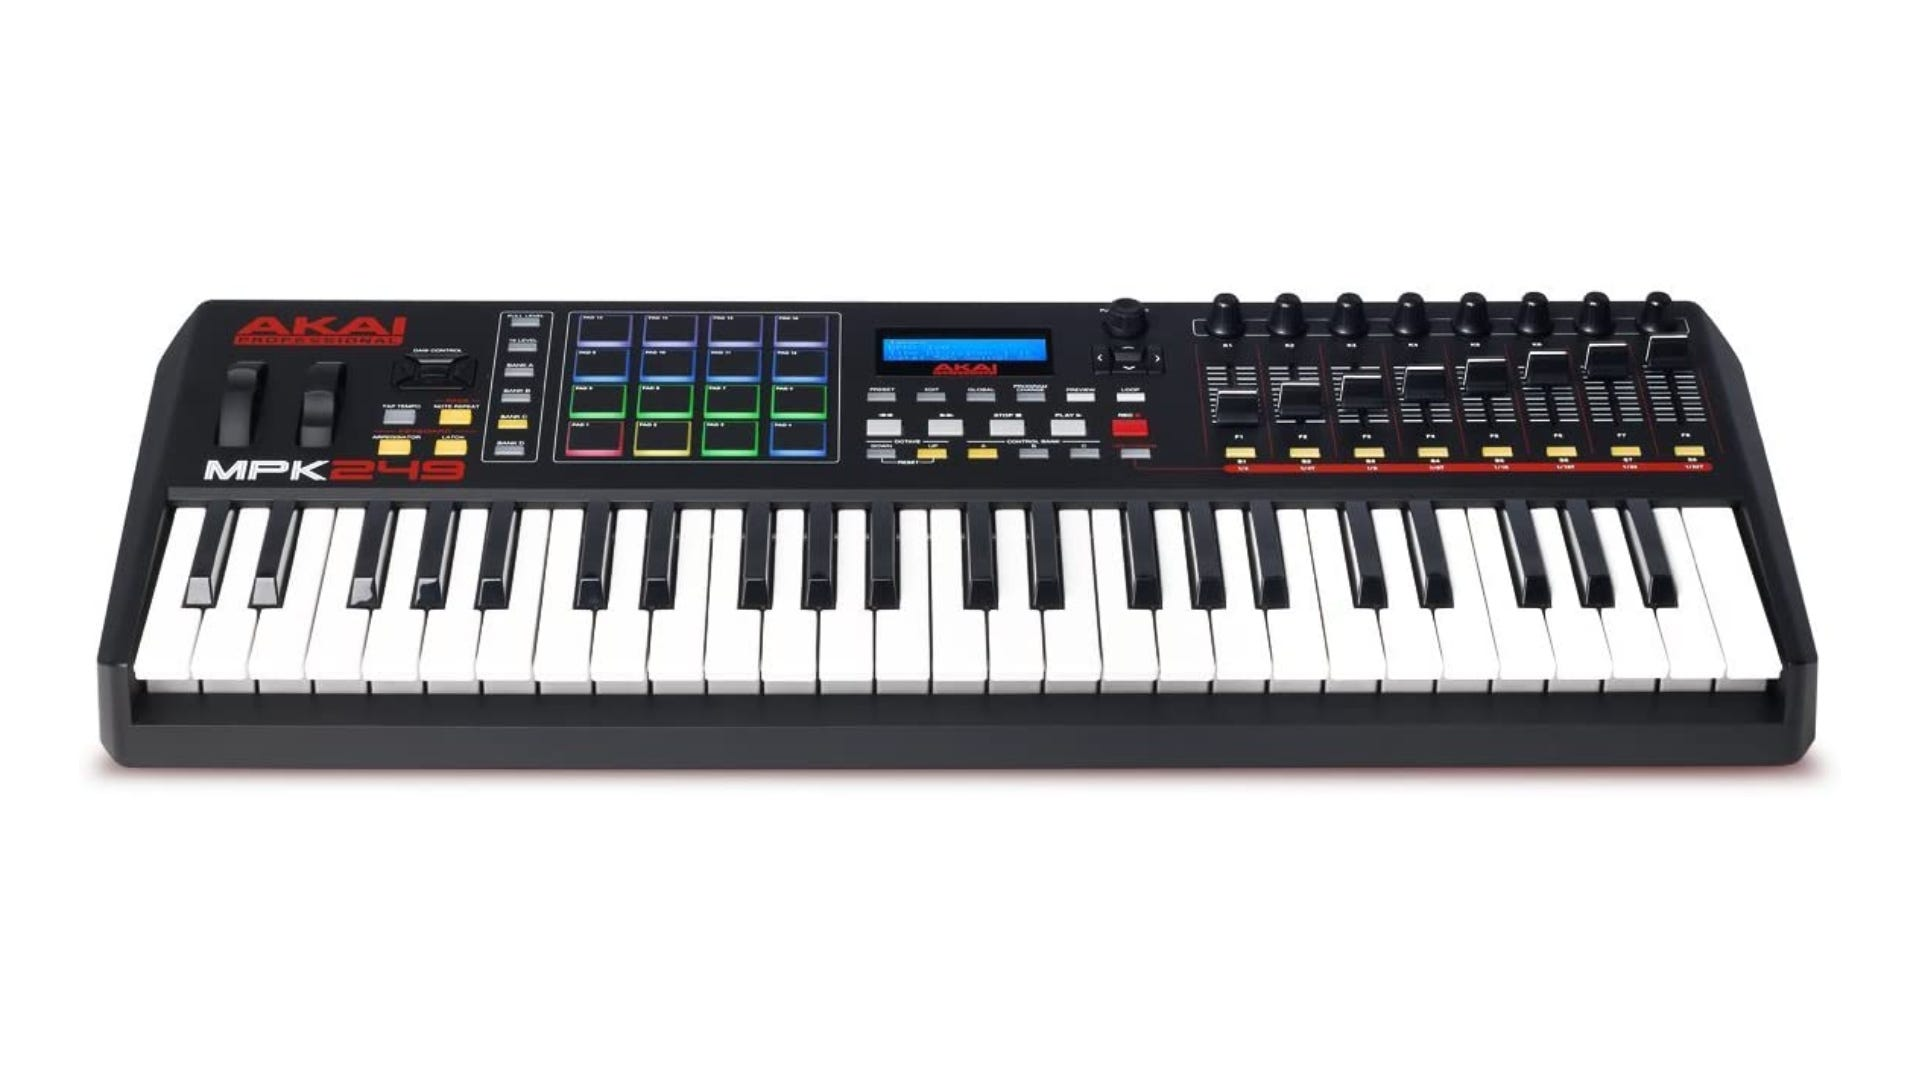 A MIDI keyboard with illuminated buttons.